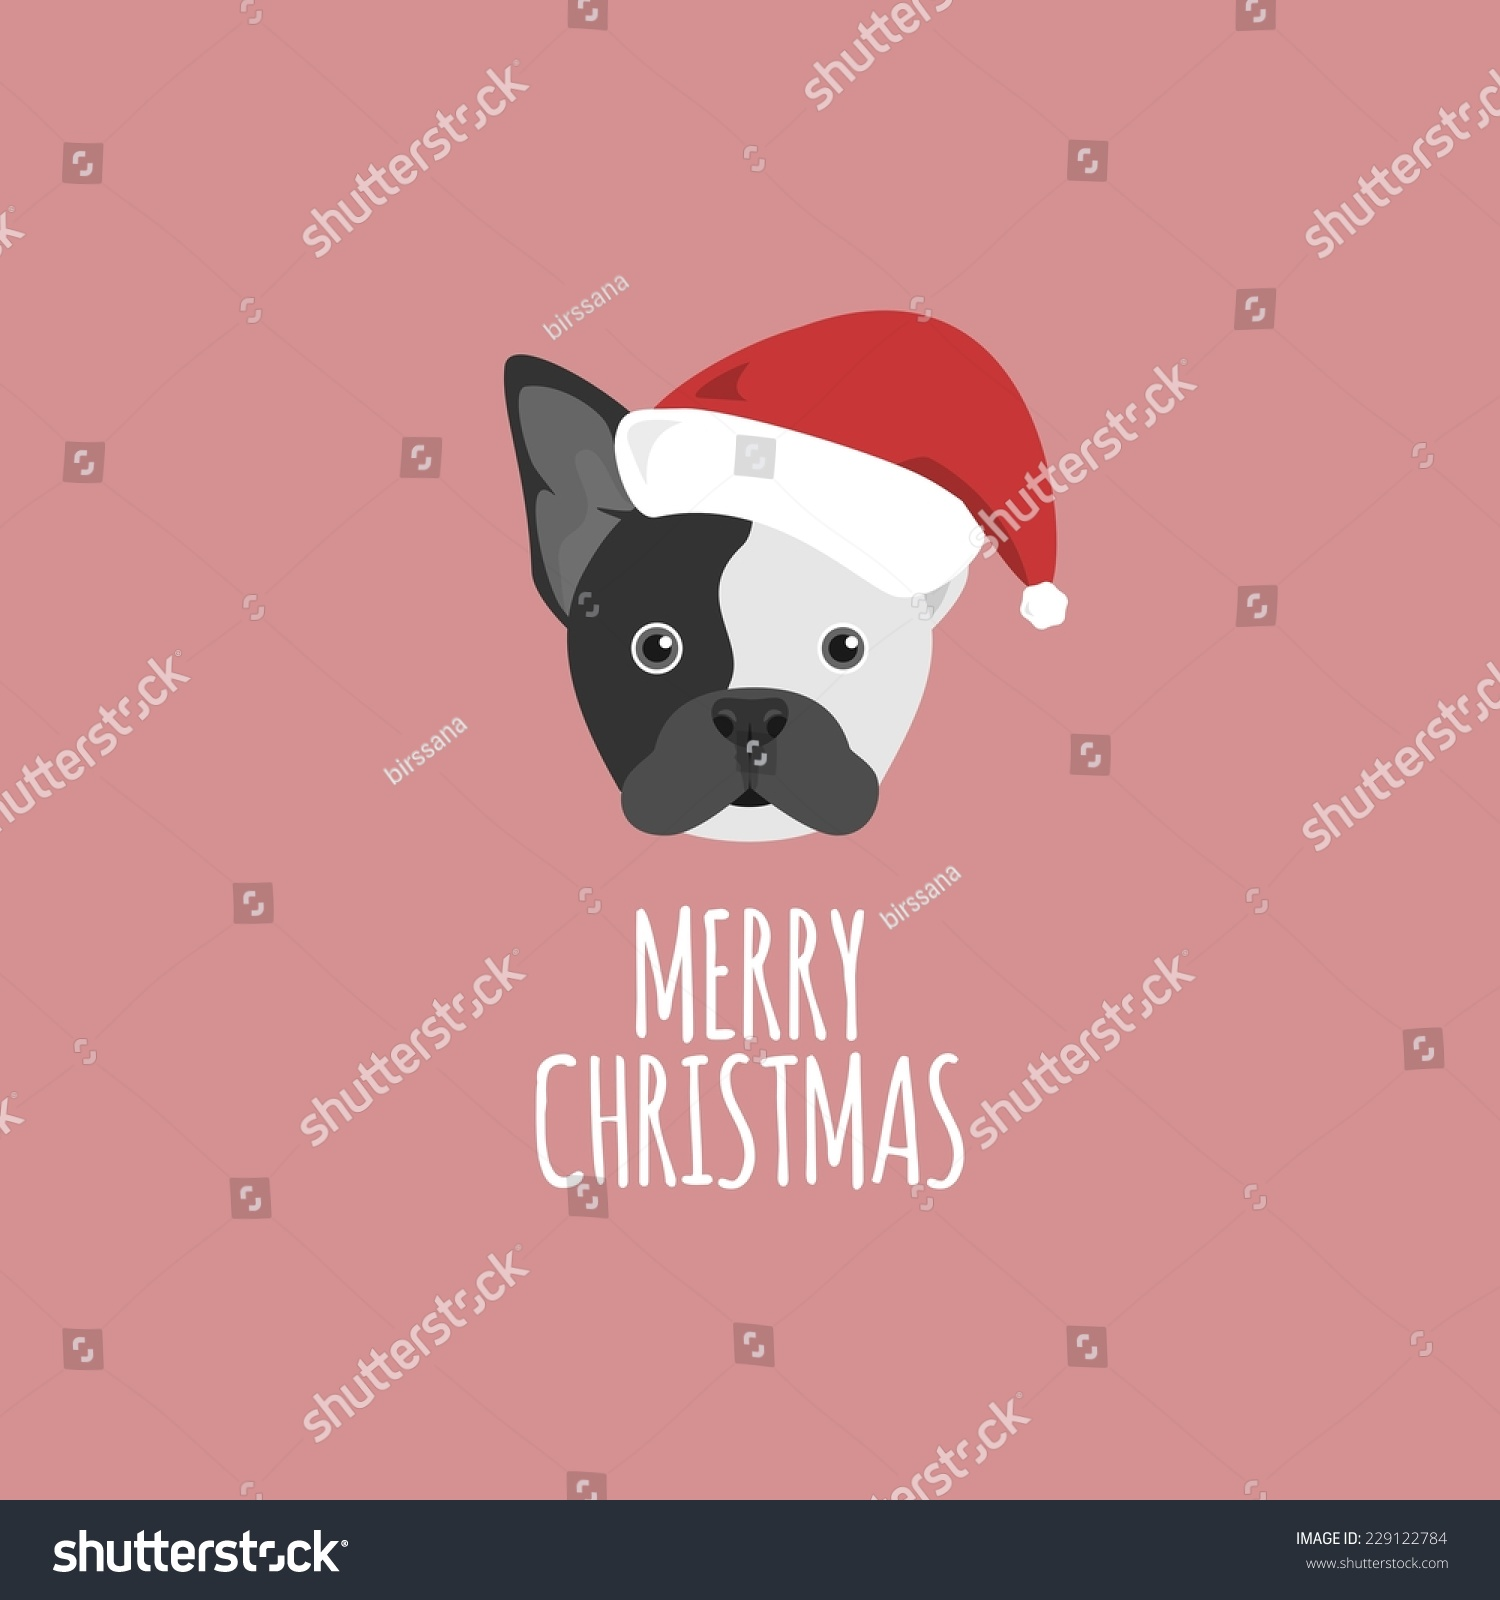 Merry Christmas Card French Bulldog Stock Vector (Royalty Free ...